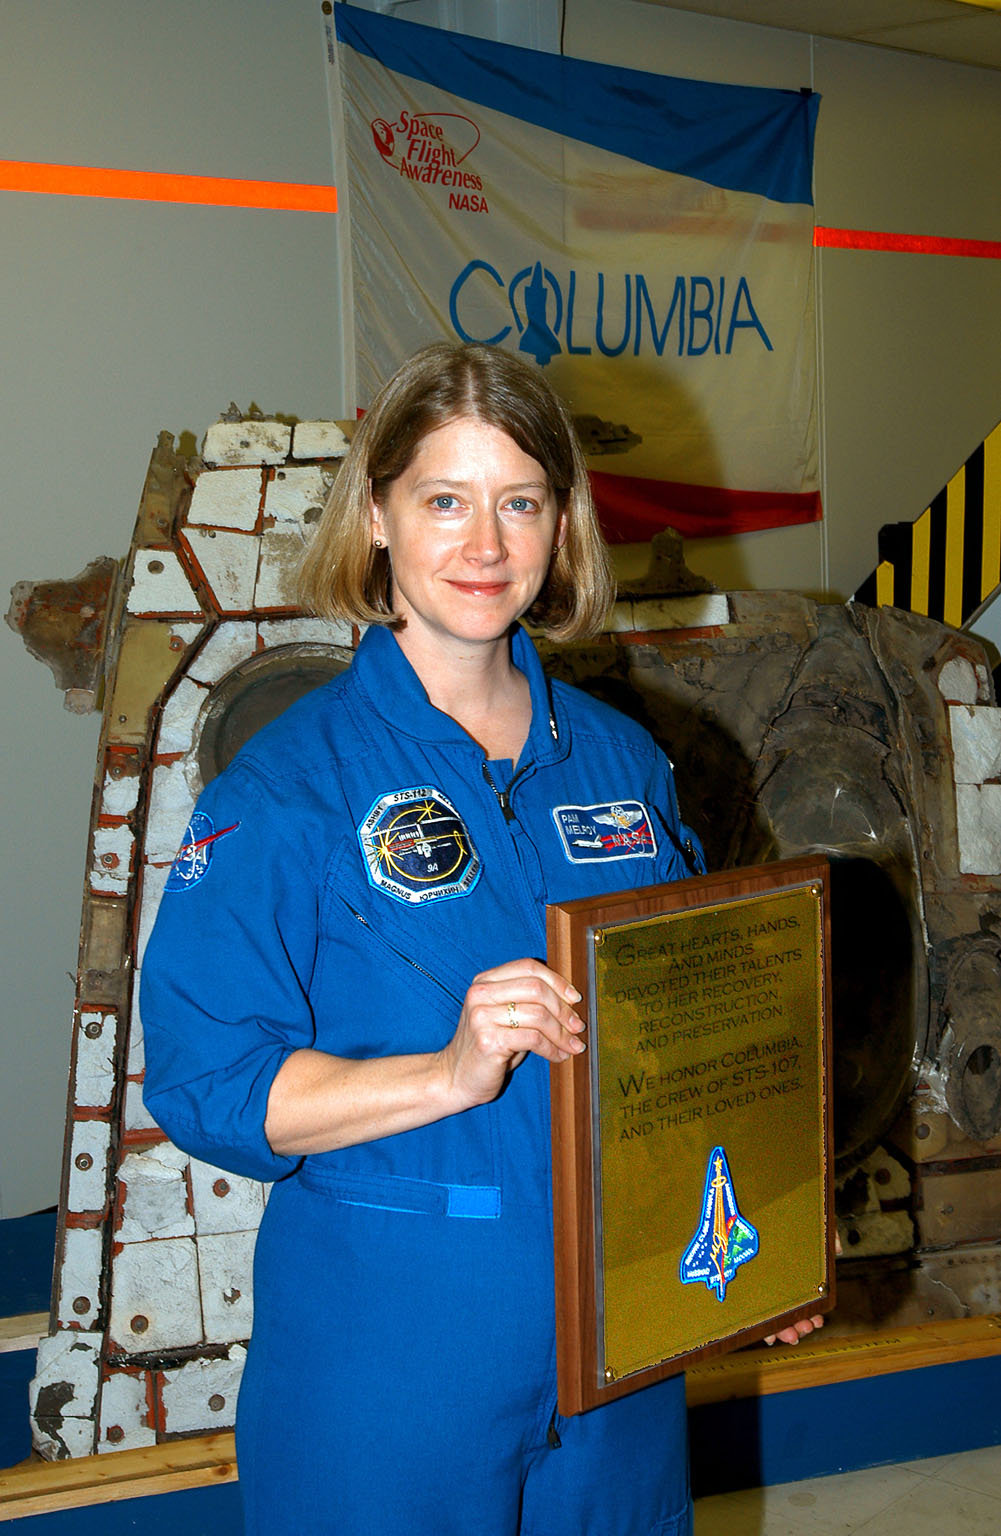 KENNEDY SPACE CENTER, FLA. - Posing with the plaque dedicated to Columbia Jan. 29, 2004, is astronaut Pam Melroy. The dedication ceremony included the 40-member preservation team gathered in the ?Columbia room,? in the Vehicle Assembly Building. The site is a permanent repository of the debris collected in the aftermath of the tragic accident Feb. 1, 2003, that claimed the orbiter and lives of the seven-member crew. Behind Melroy is a piece of the debris.